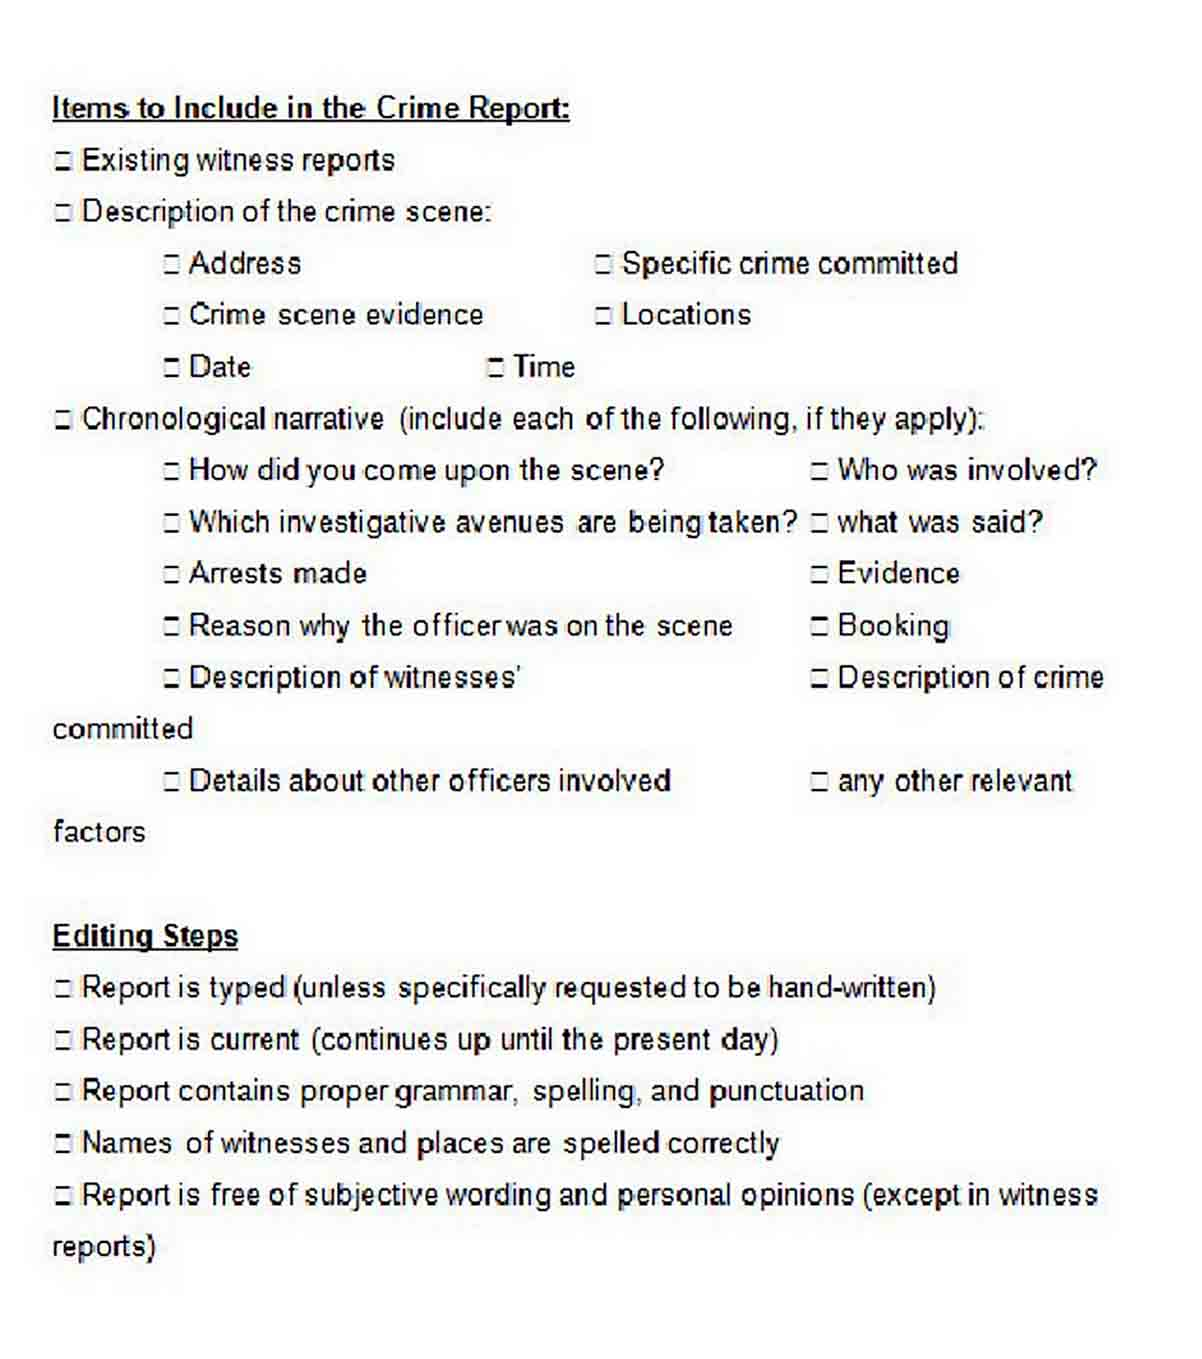 Items to Include in a Crime Report Template 2 sample